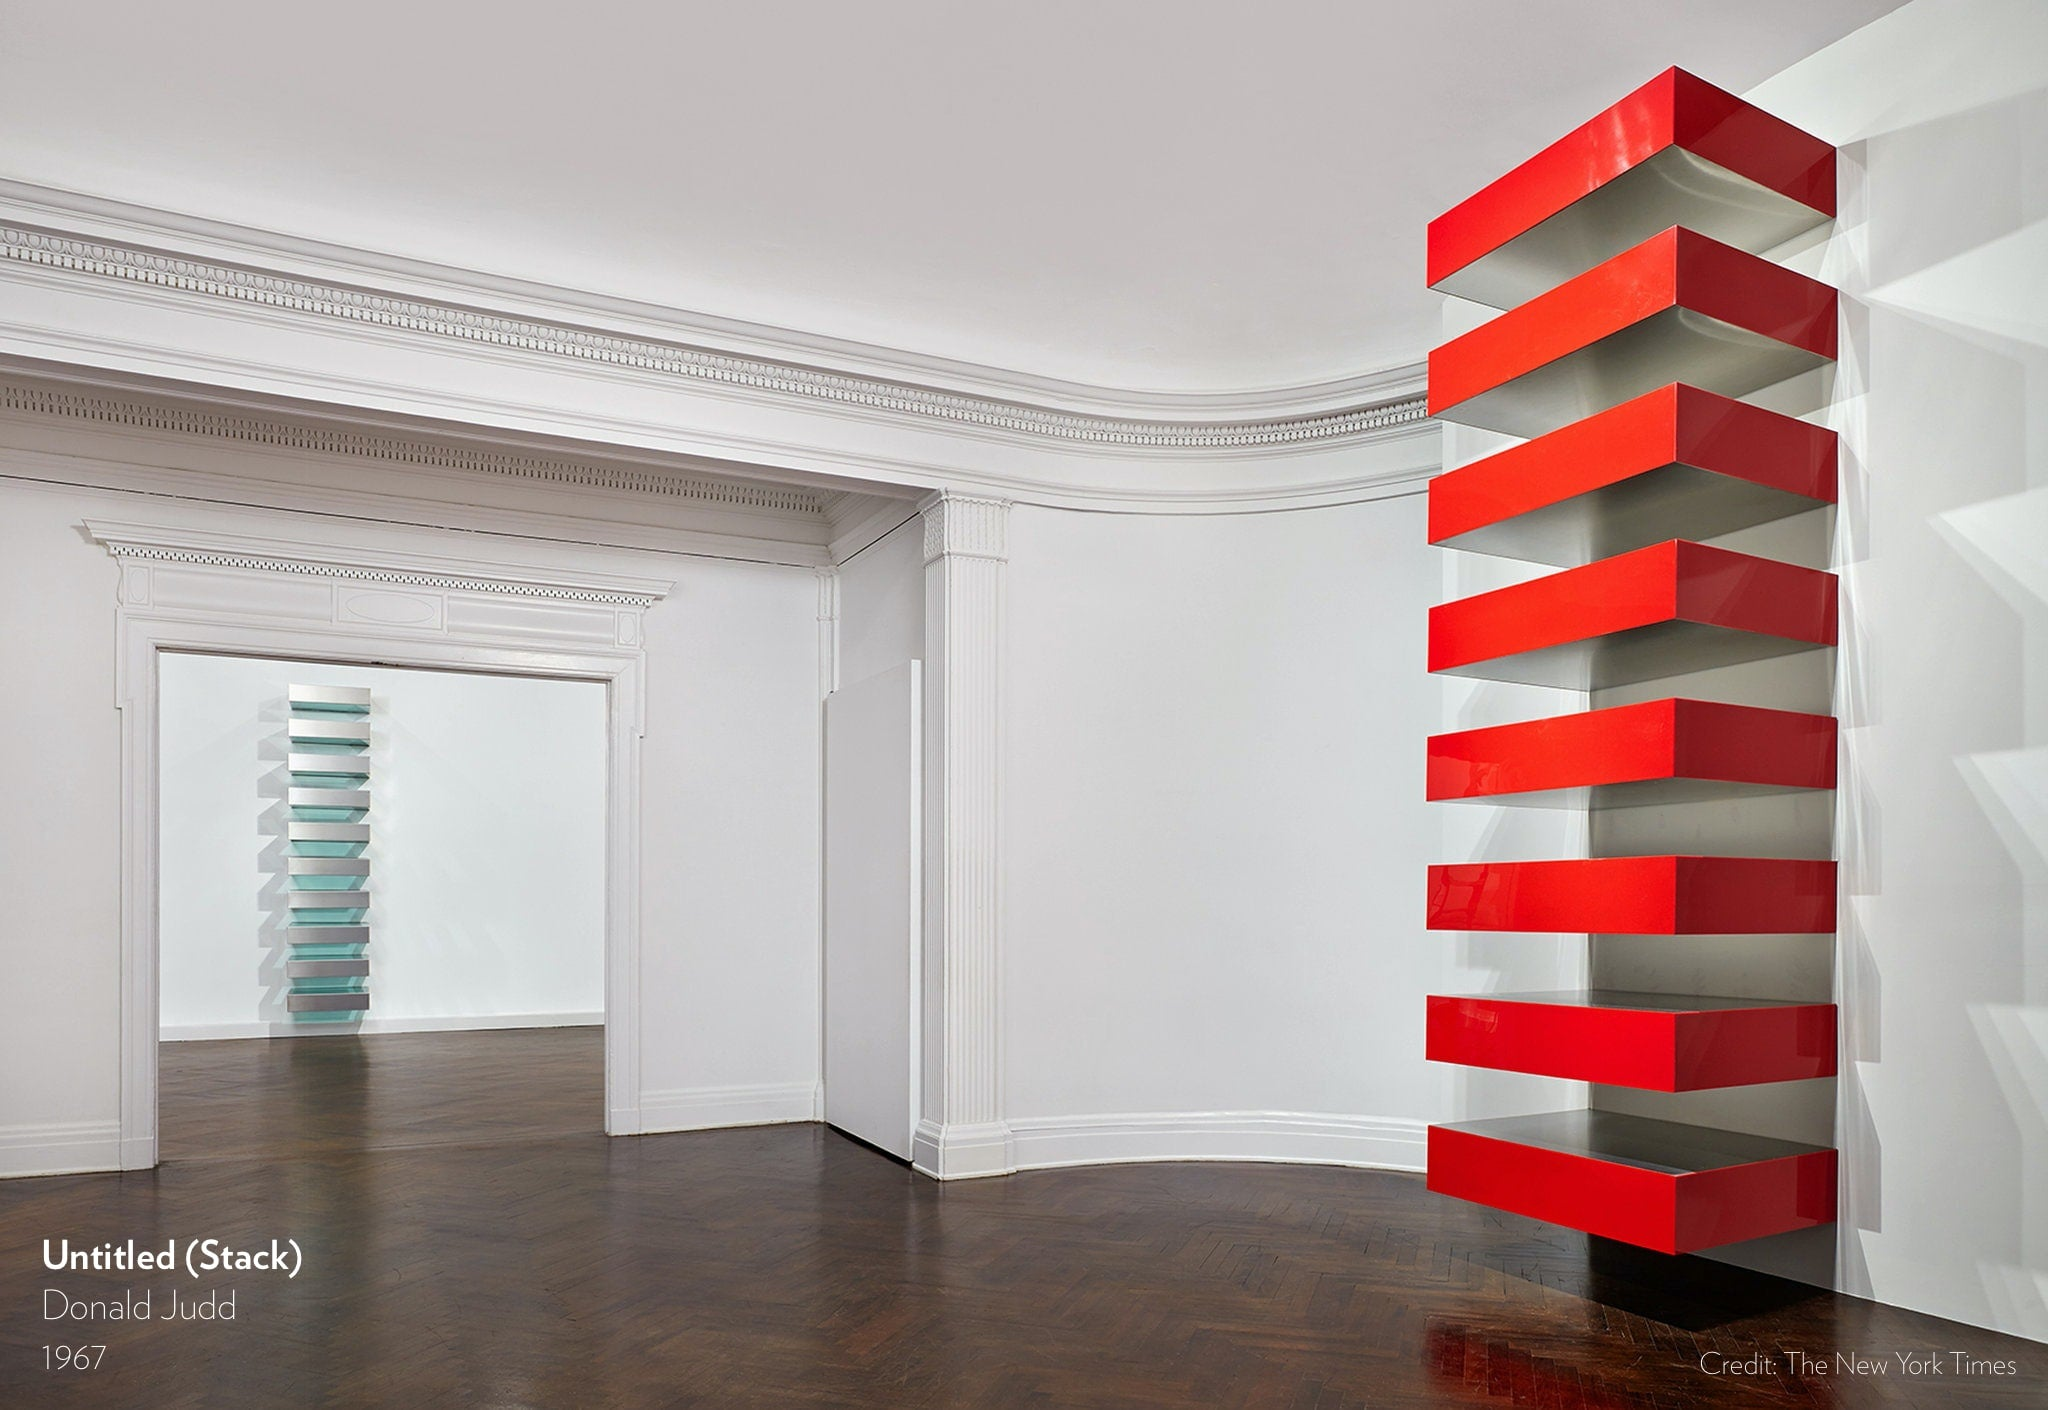 Untitled (Stack) by Donald Judd, 1967.